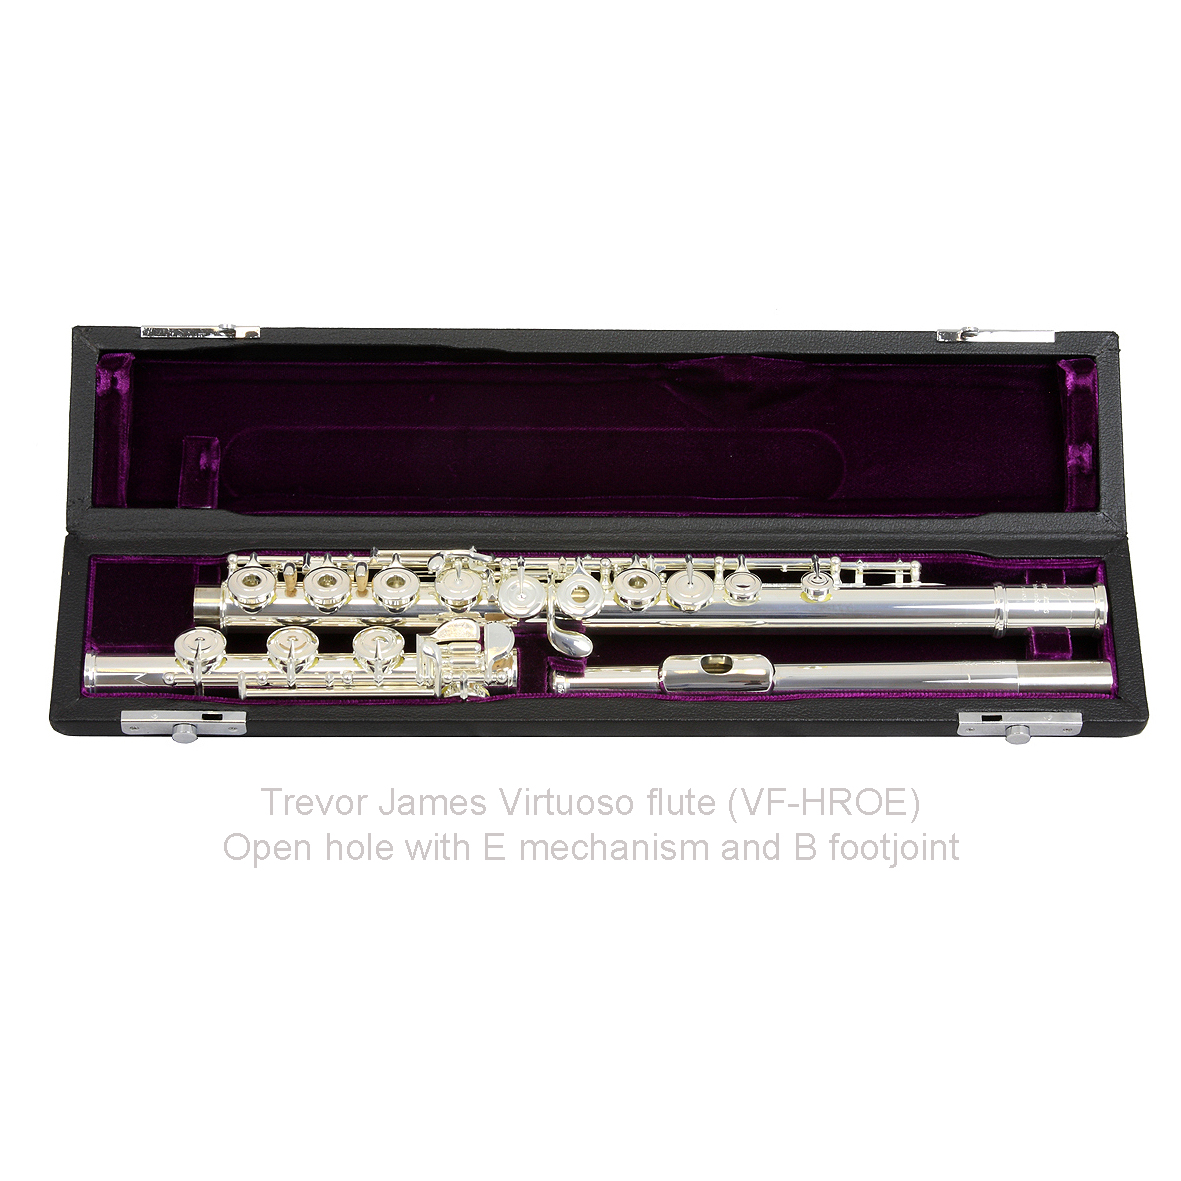 Trevor James Virtuoso Flute - Open Hole B Foot (31VF-HROE)